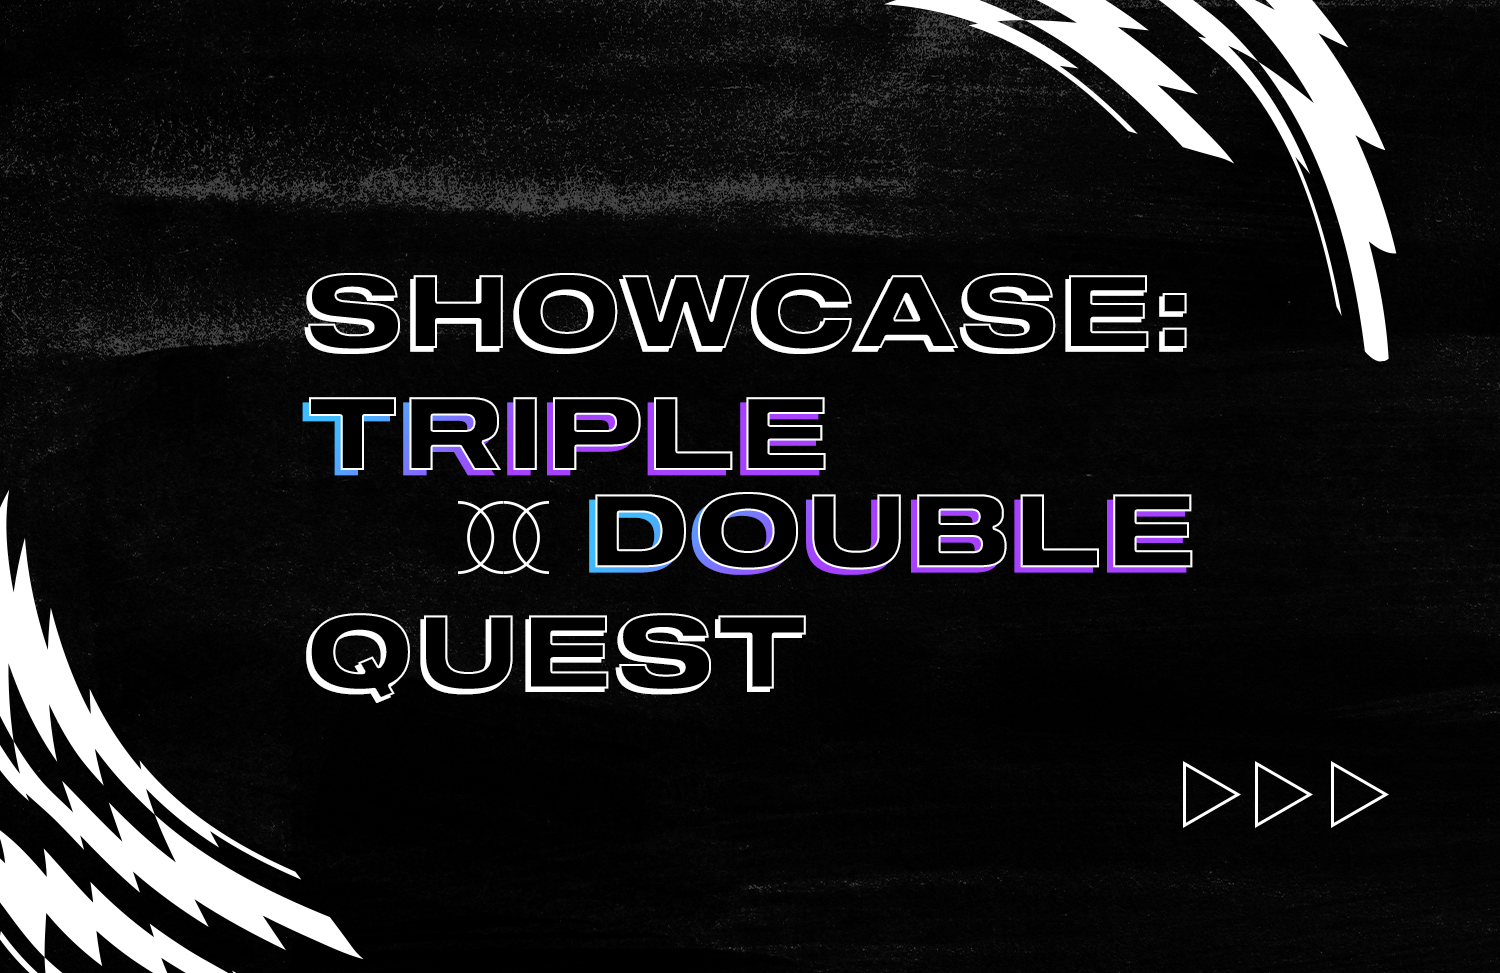 To celebrate a major Moment in NBA history, we're launching a new and improved Showcase Quest feature...